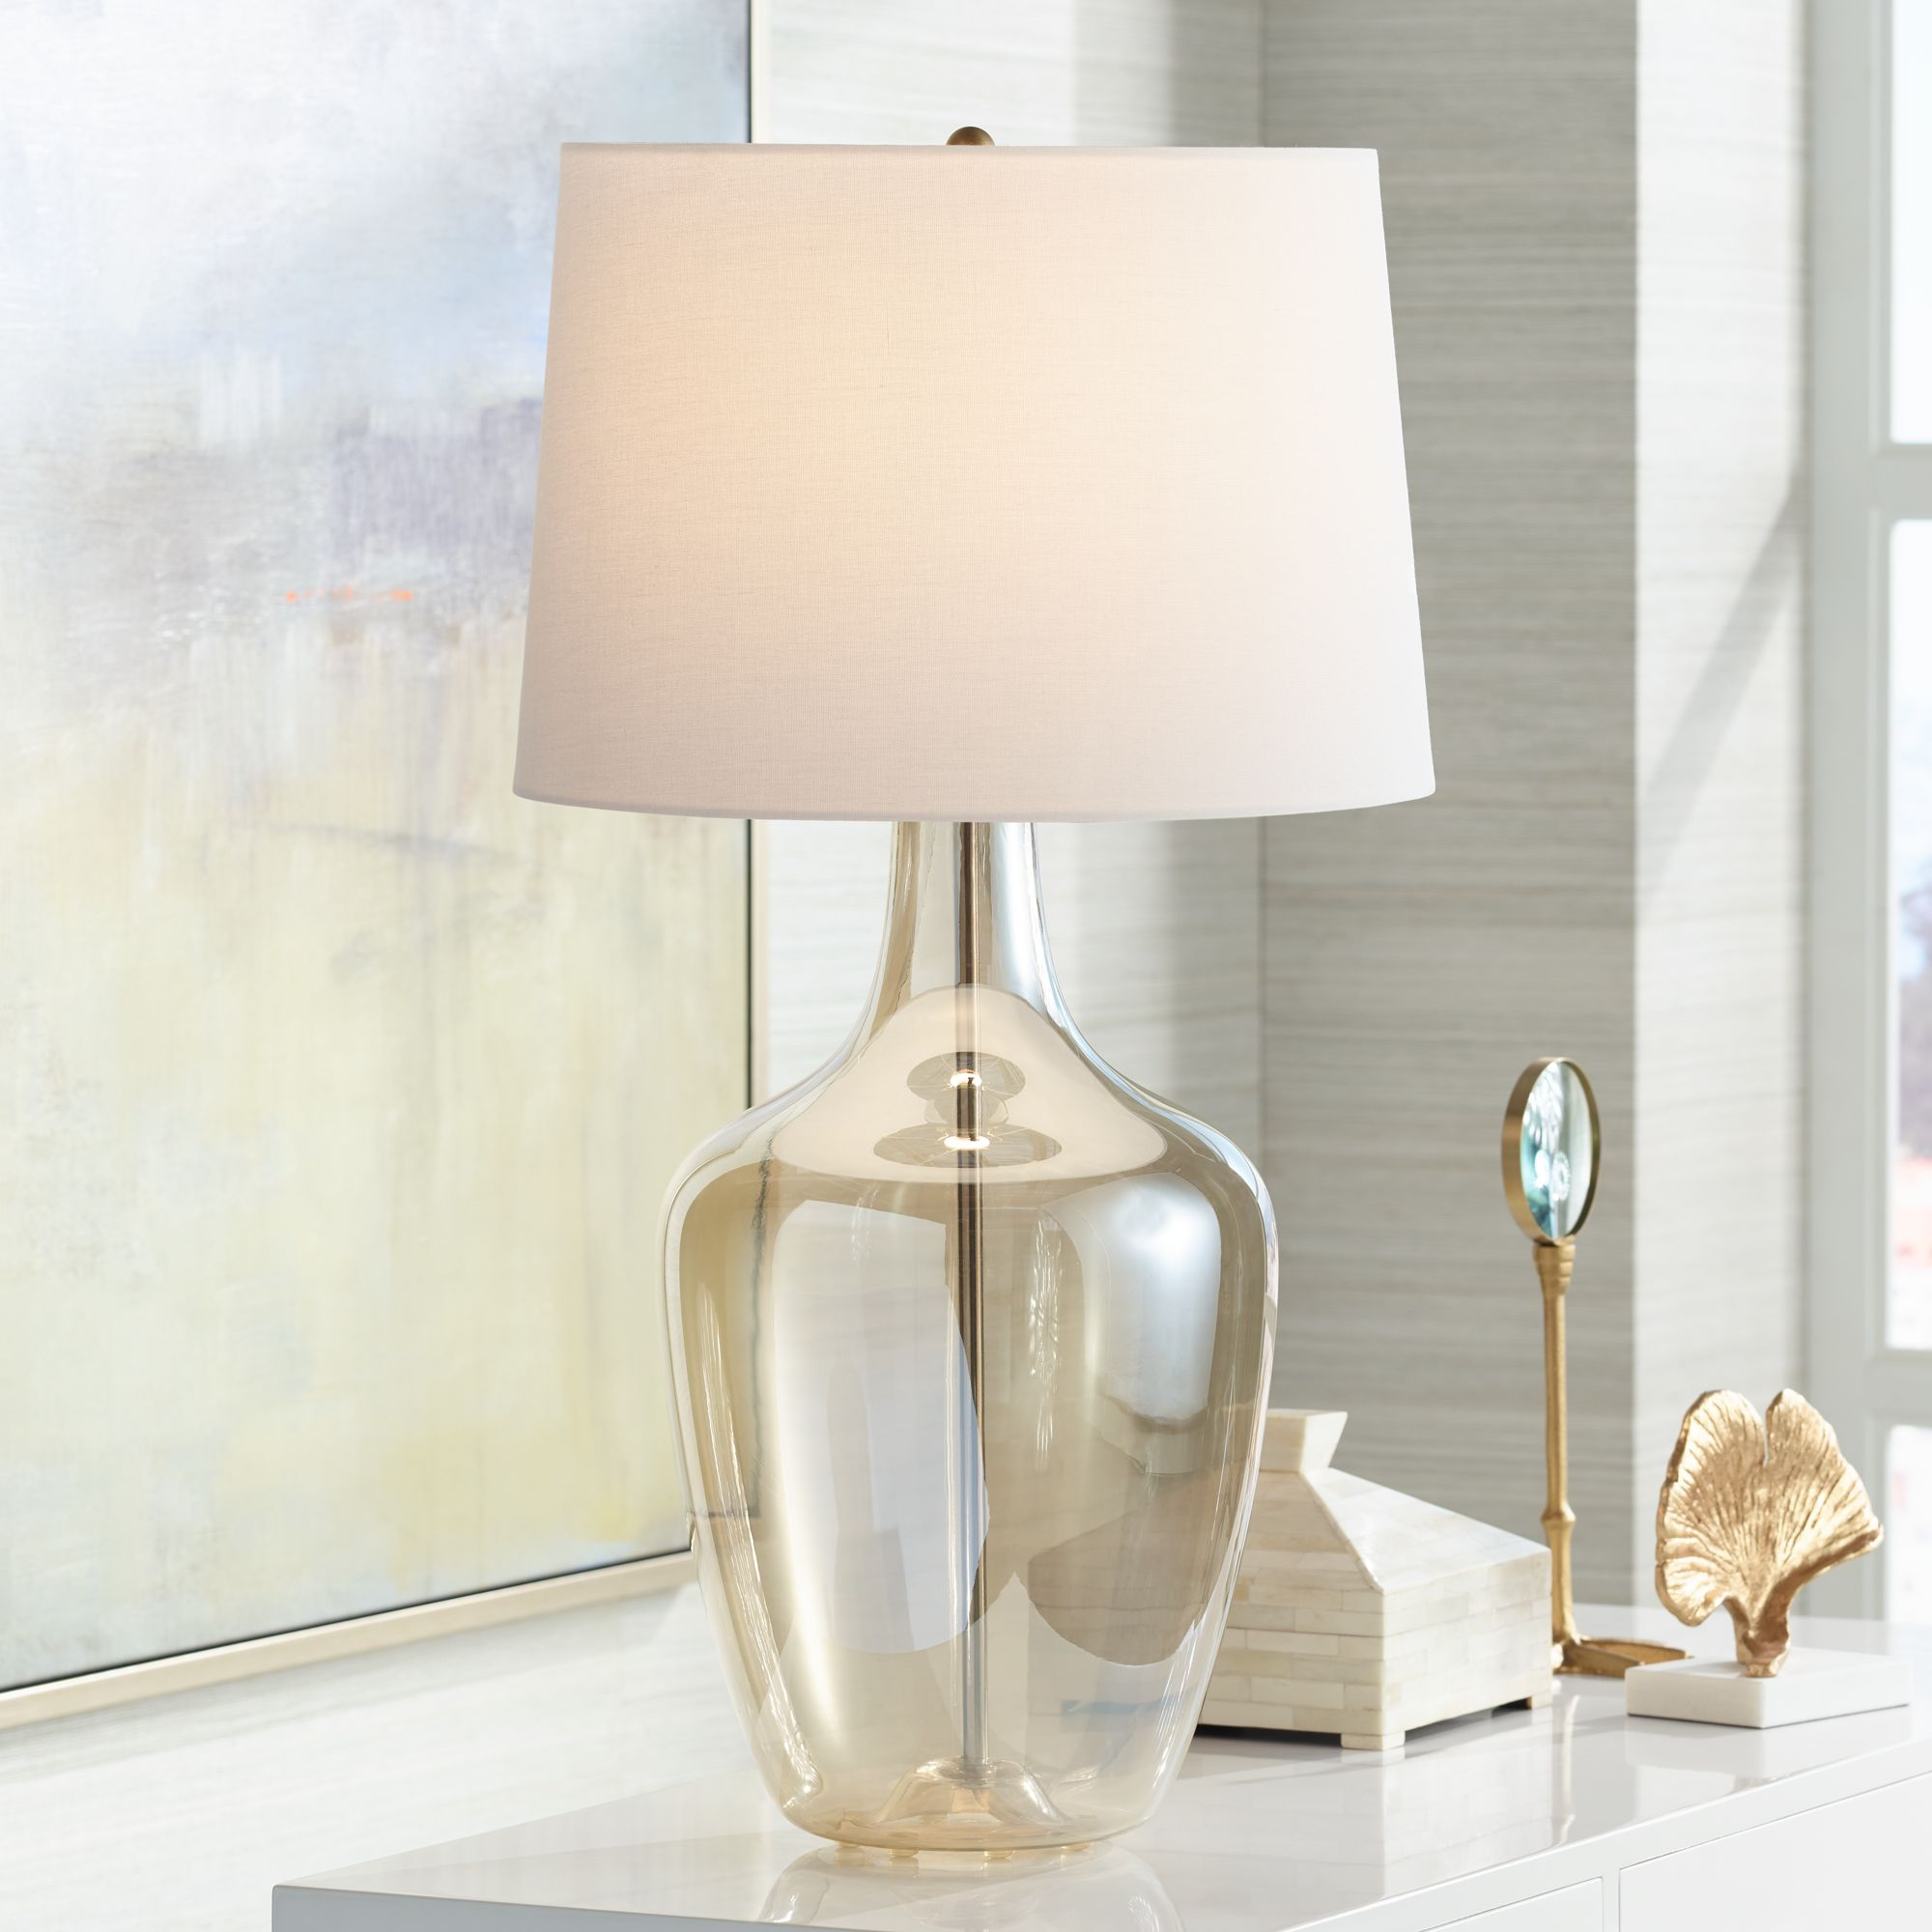 Ania Champagne Glass Jar Table Lamp